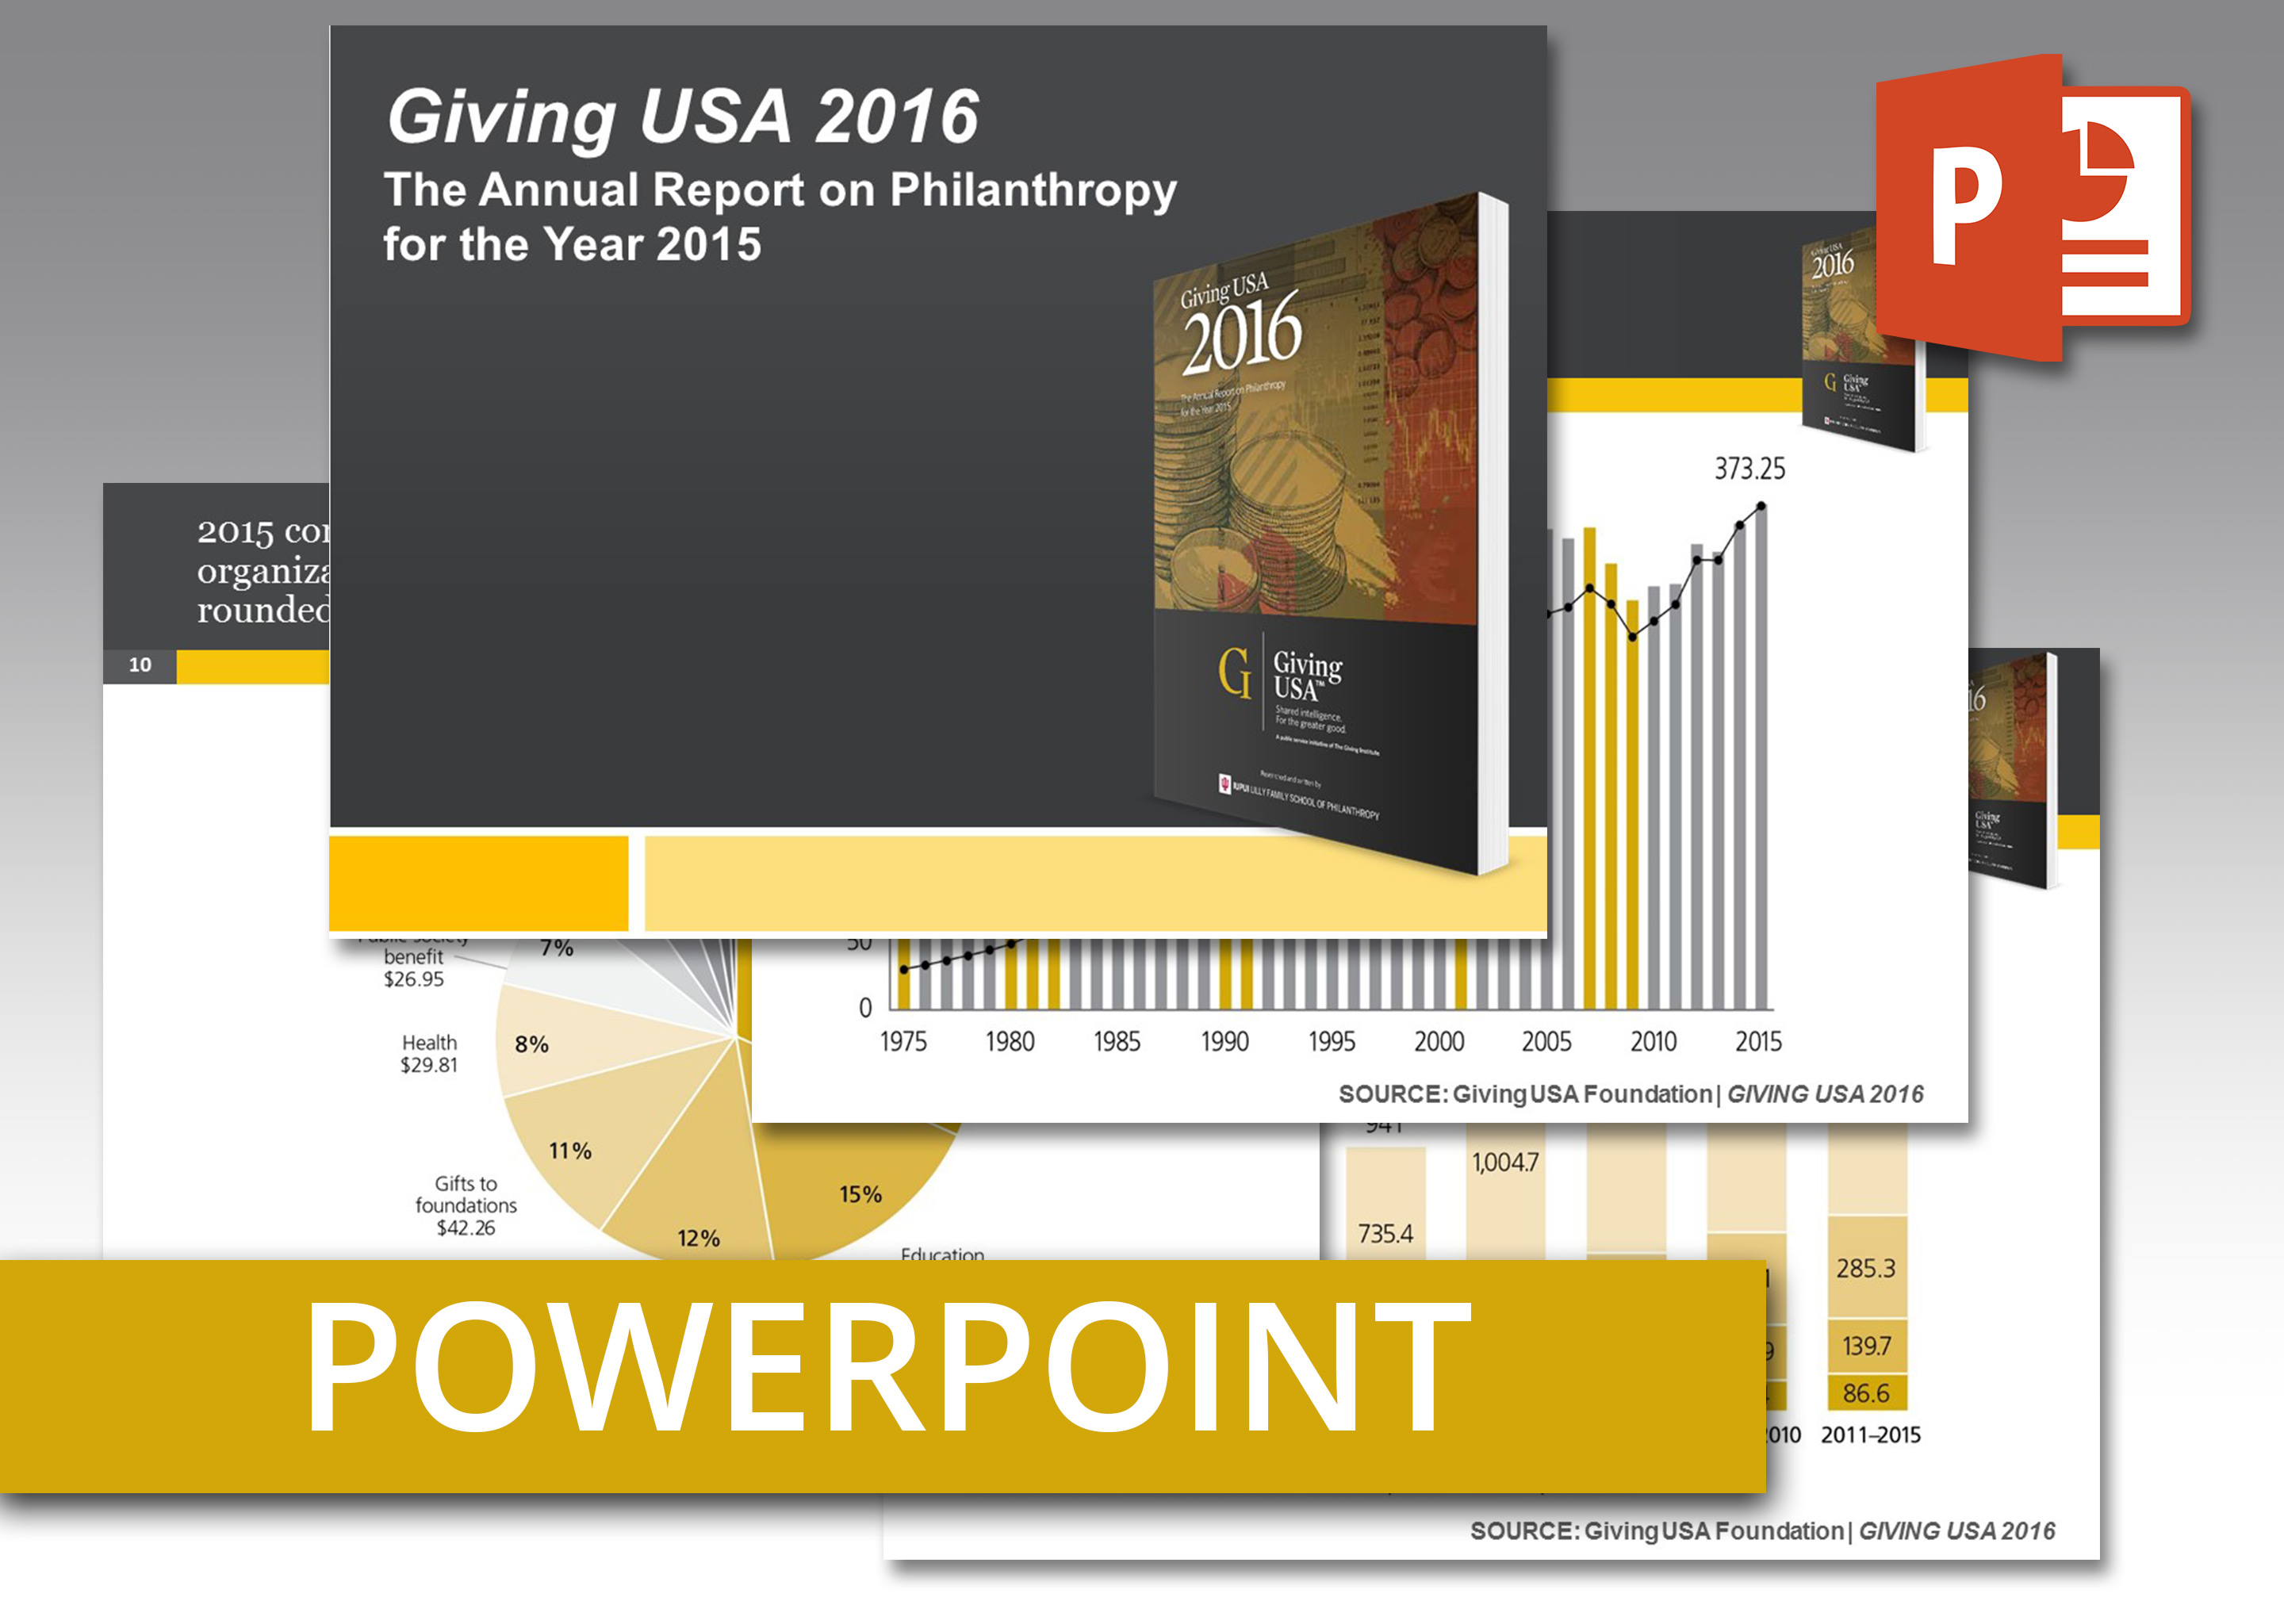 Usdgus  Gorgeous Giving Usa  Powerpoint An Easytouse Presentation Of Report  With Exciting Giving Usa  Powerpoint An Easytouse Presentation Of Report Findings Including Talking Points With Astounding Adolf Hitler Powerpoint Also Powerpoint Design Template In Addition Free Audio Clips For Powerpoint And Notebook Powerpoint Template As Well As Svg In Powerpoint Additionally Sincgars Powerpoint From Givingusaorg With Usdgus  Exciting Giving Usa  Powerpoint An Easytouse Presentation Of Report  With Astounding Giving Usa  Powerpoint An Easytouse Presentation Of Report Findings Including Talking Points And Gorgeous Adolf Hitler Powerpoint Also Powerpoint Design Template In Addition Free Audio Clips For Powerpoint From Givingusaorg